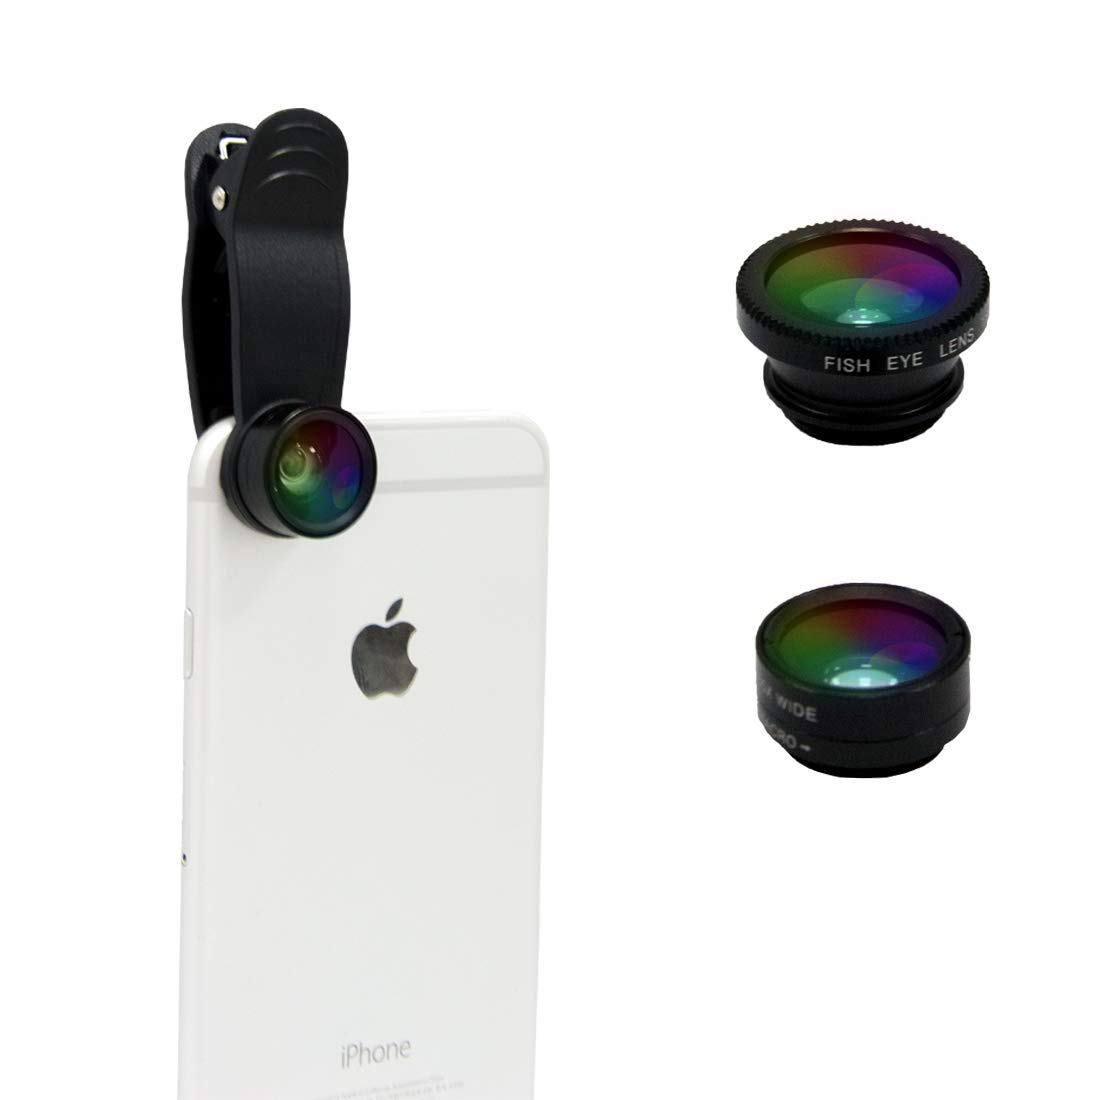 BEGOO Universal Professional Camera Lens Kit for iPhone X/8/7Plus/7/6sPlus/6s, Samsung S8+/S8 Phone Camera Lens Super Wide Angle Lens & Macro Lens